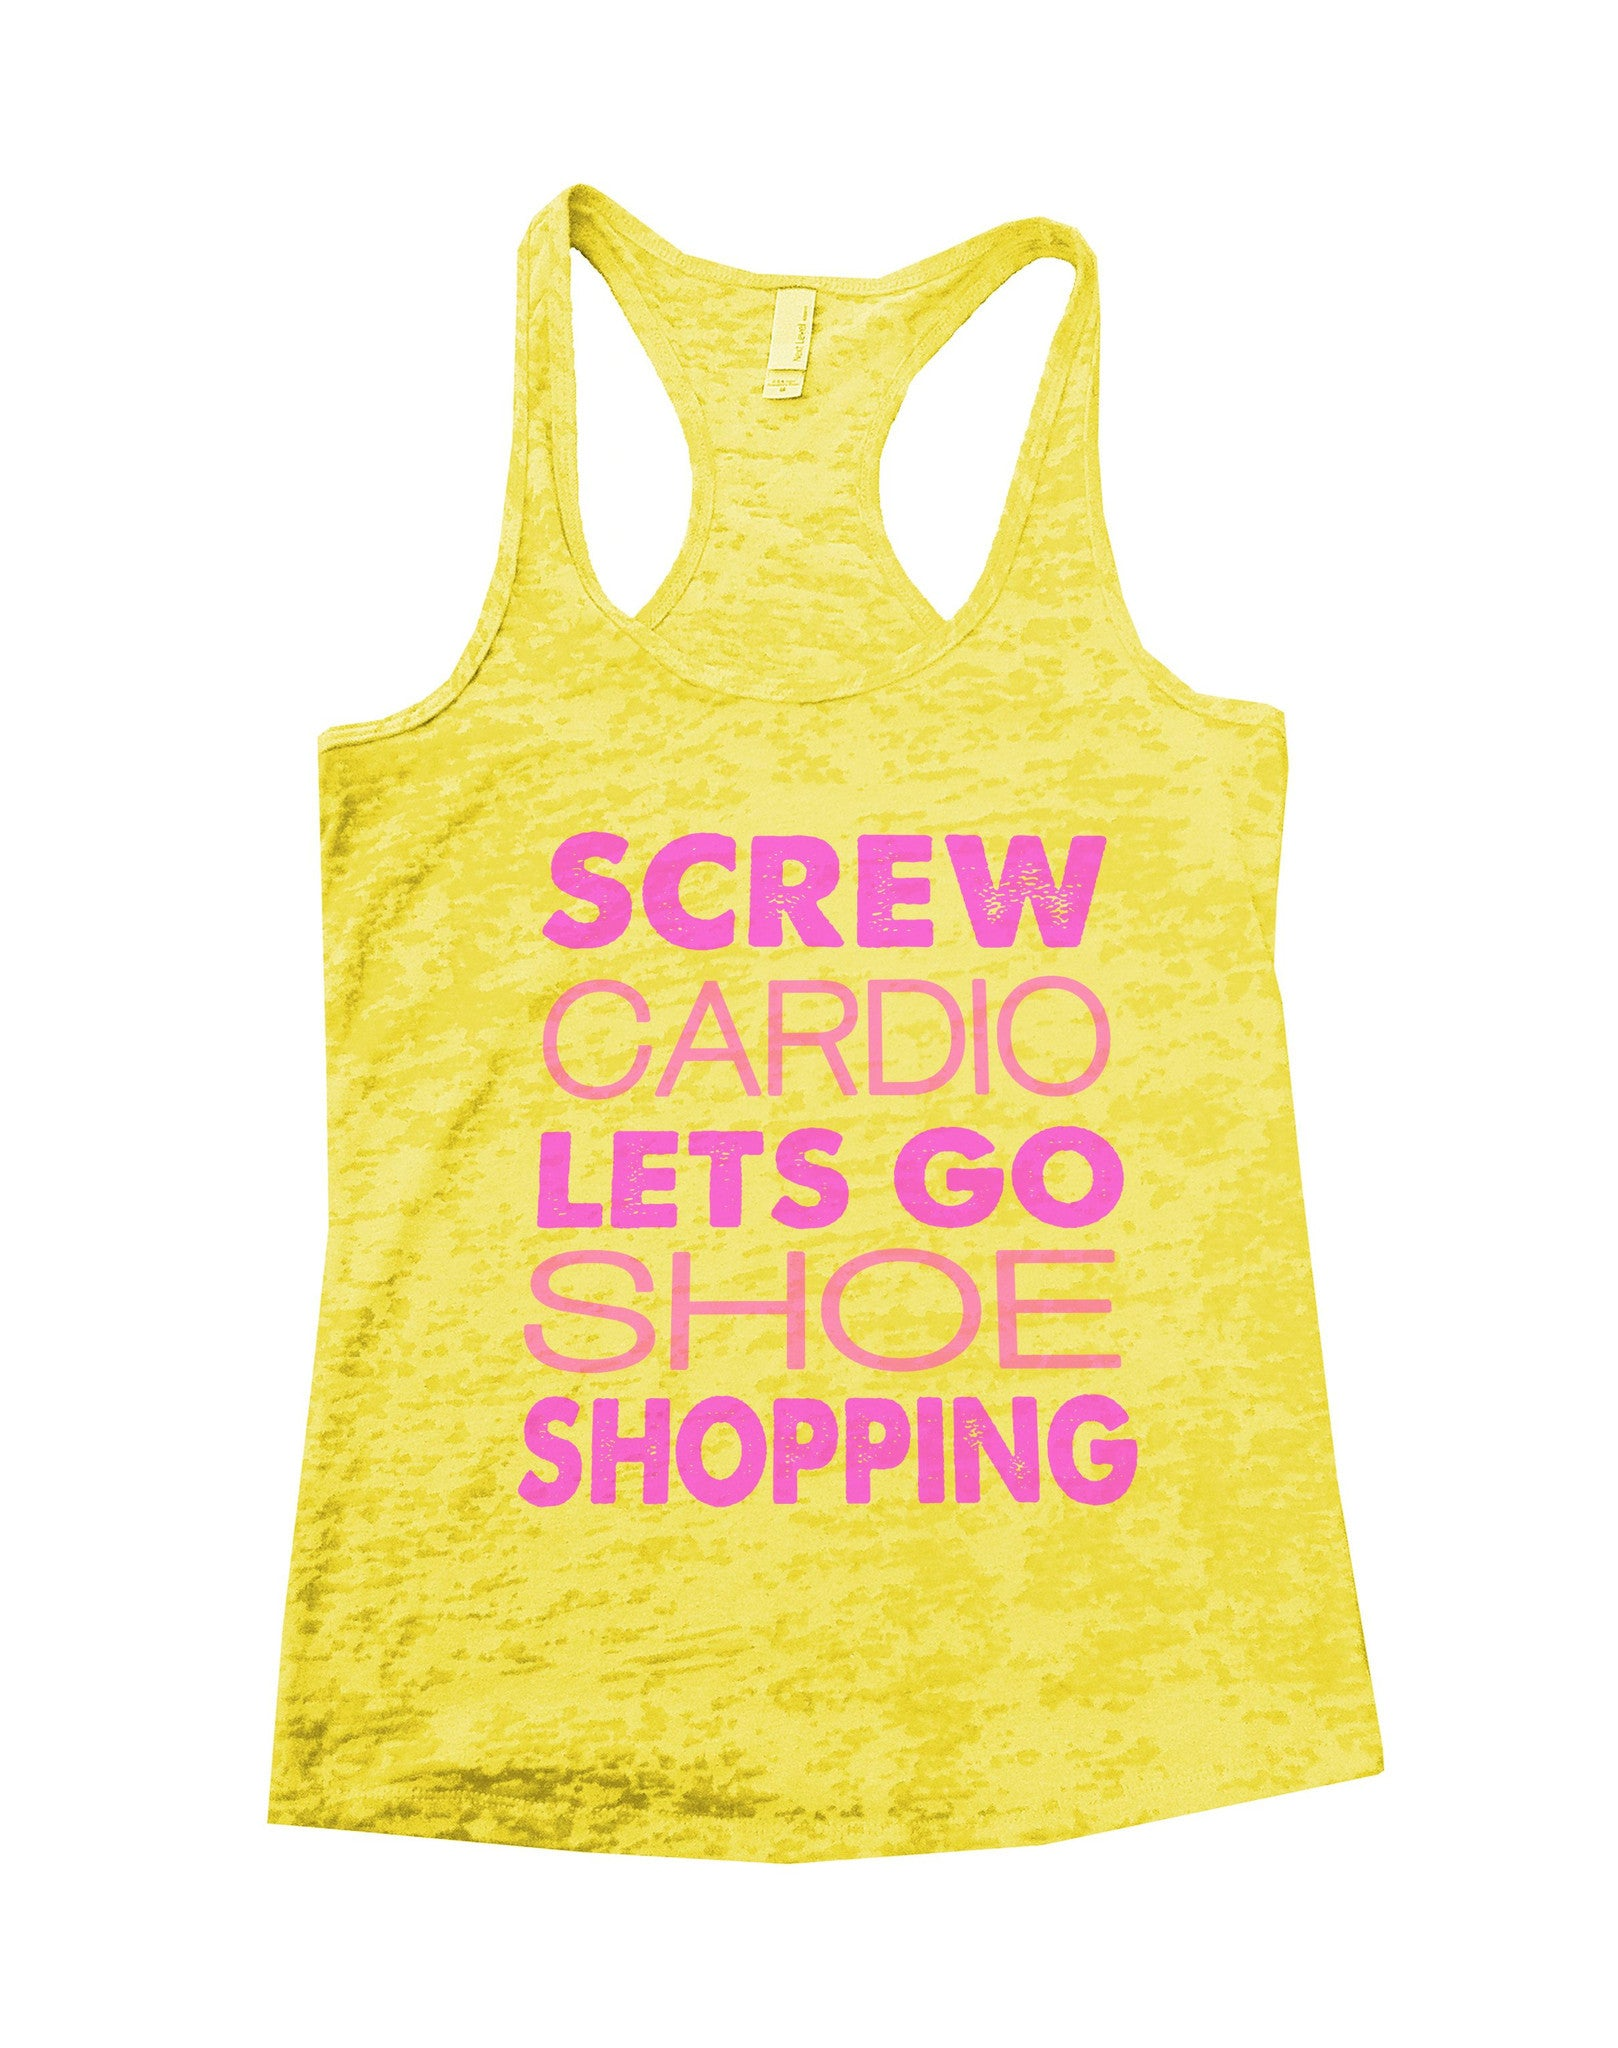 Screw Cardio Lets Go Shoe Shopping Burnout Tank Top By BurnoutTankTops.com - 687 - Funny Shirts Tank Tops Burnouts and Triblends  - 3